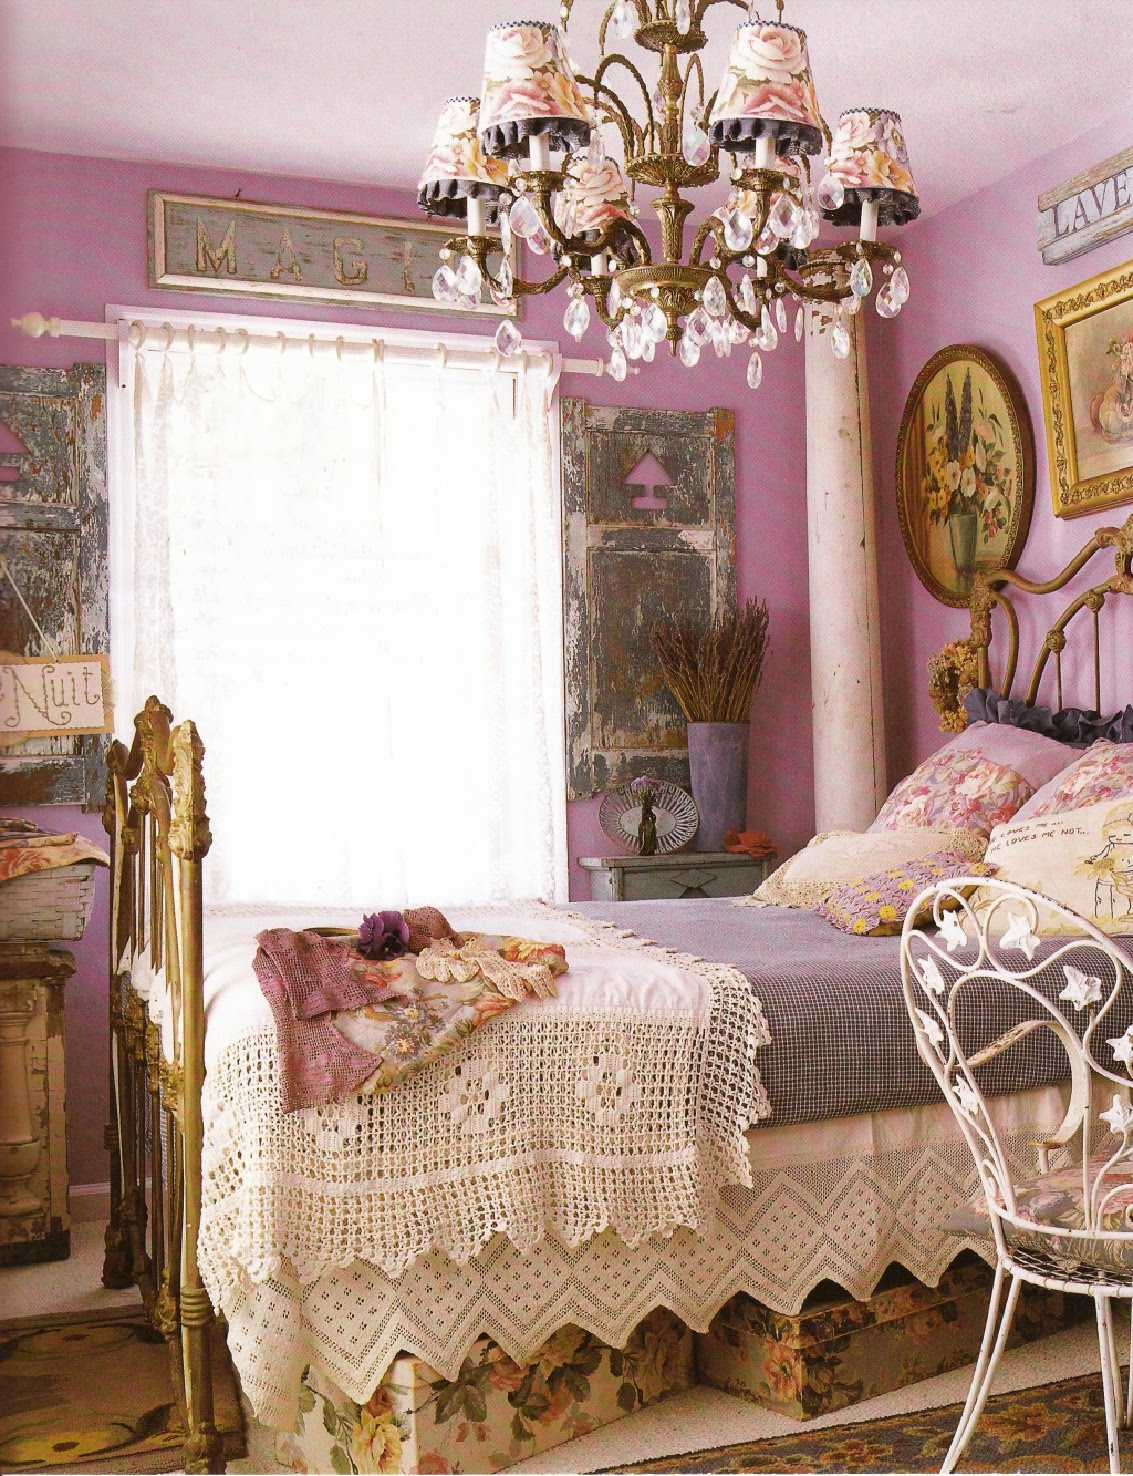 Vintage Chic Home Decor Via Rock Candy Blog Vintage And Shabby Chic Furniture And